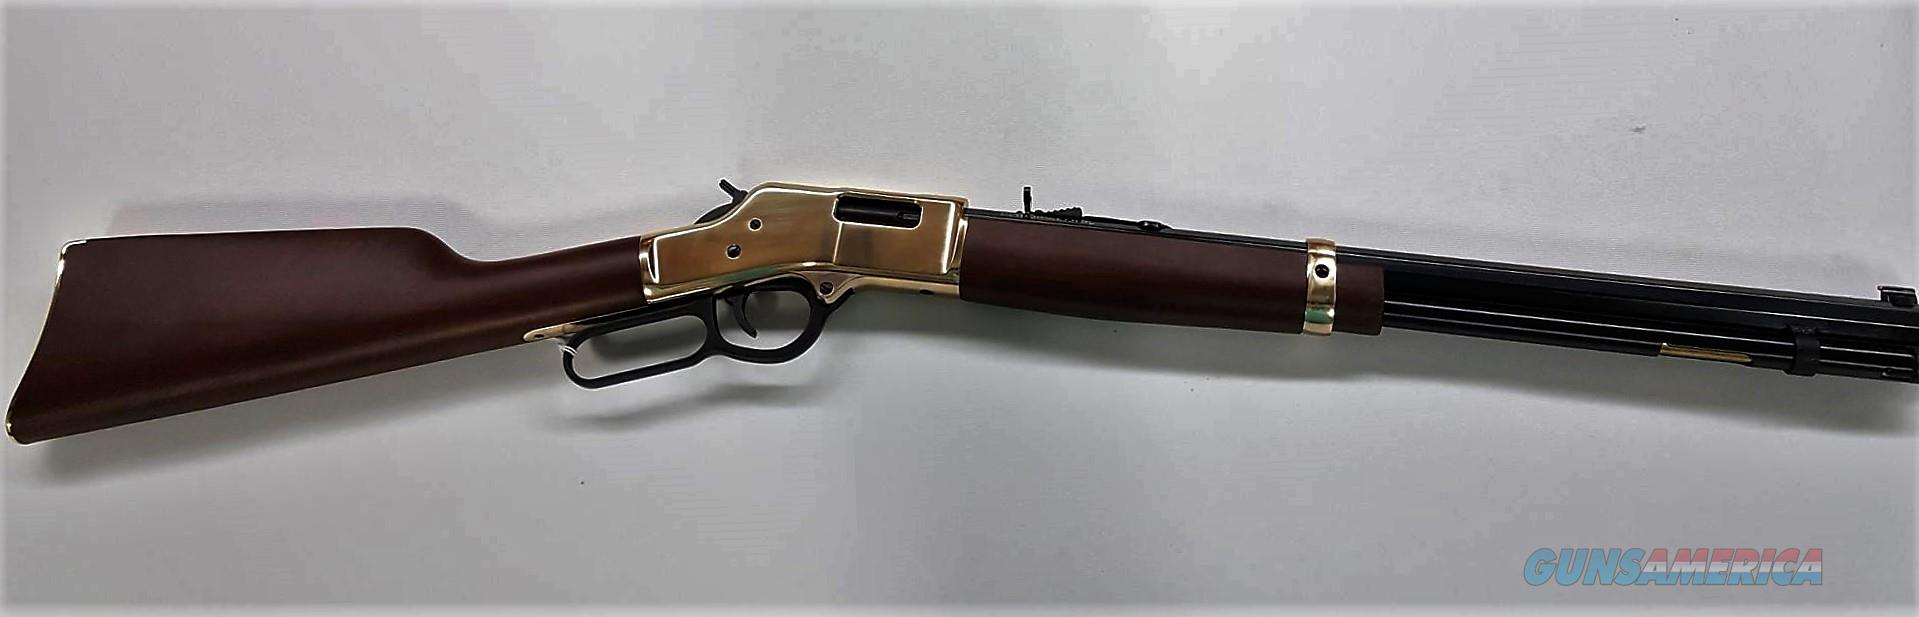 Henry Big Boy 357mag  Guns > Rifles > Henry Rifle Company